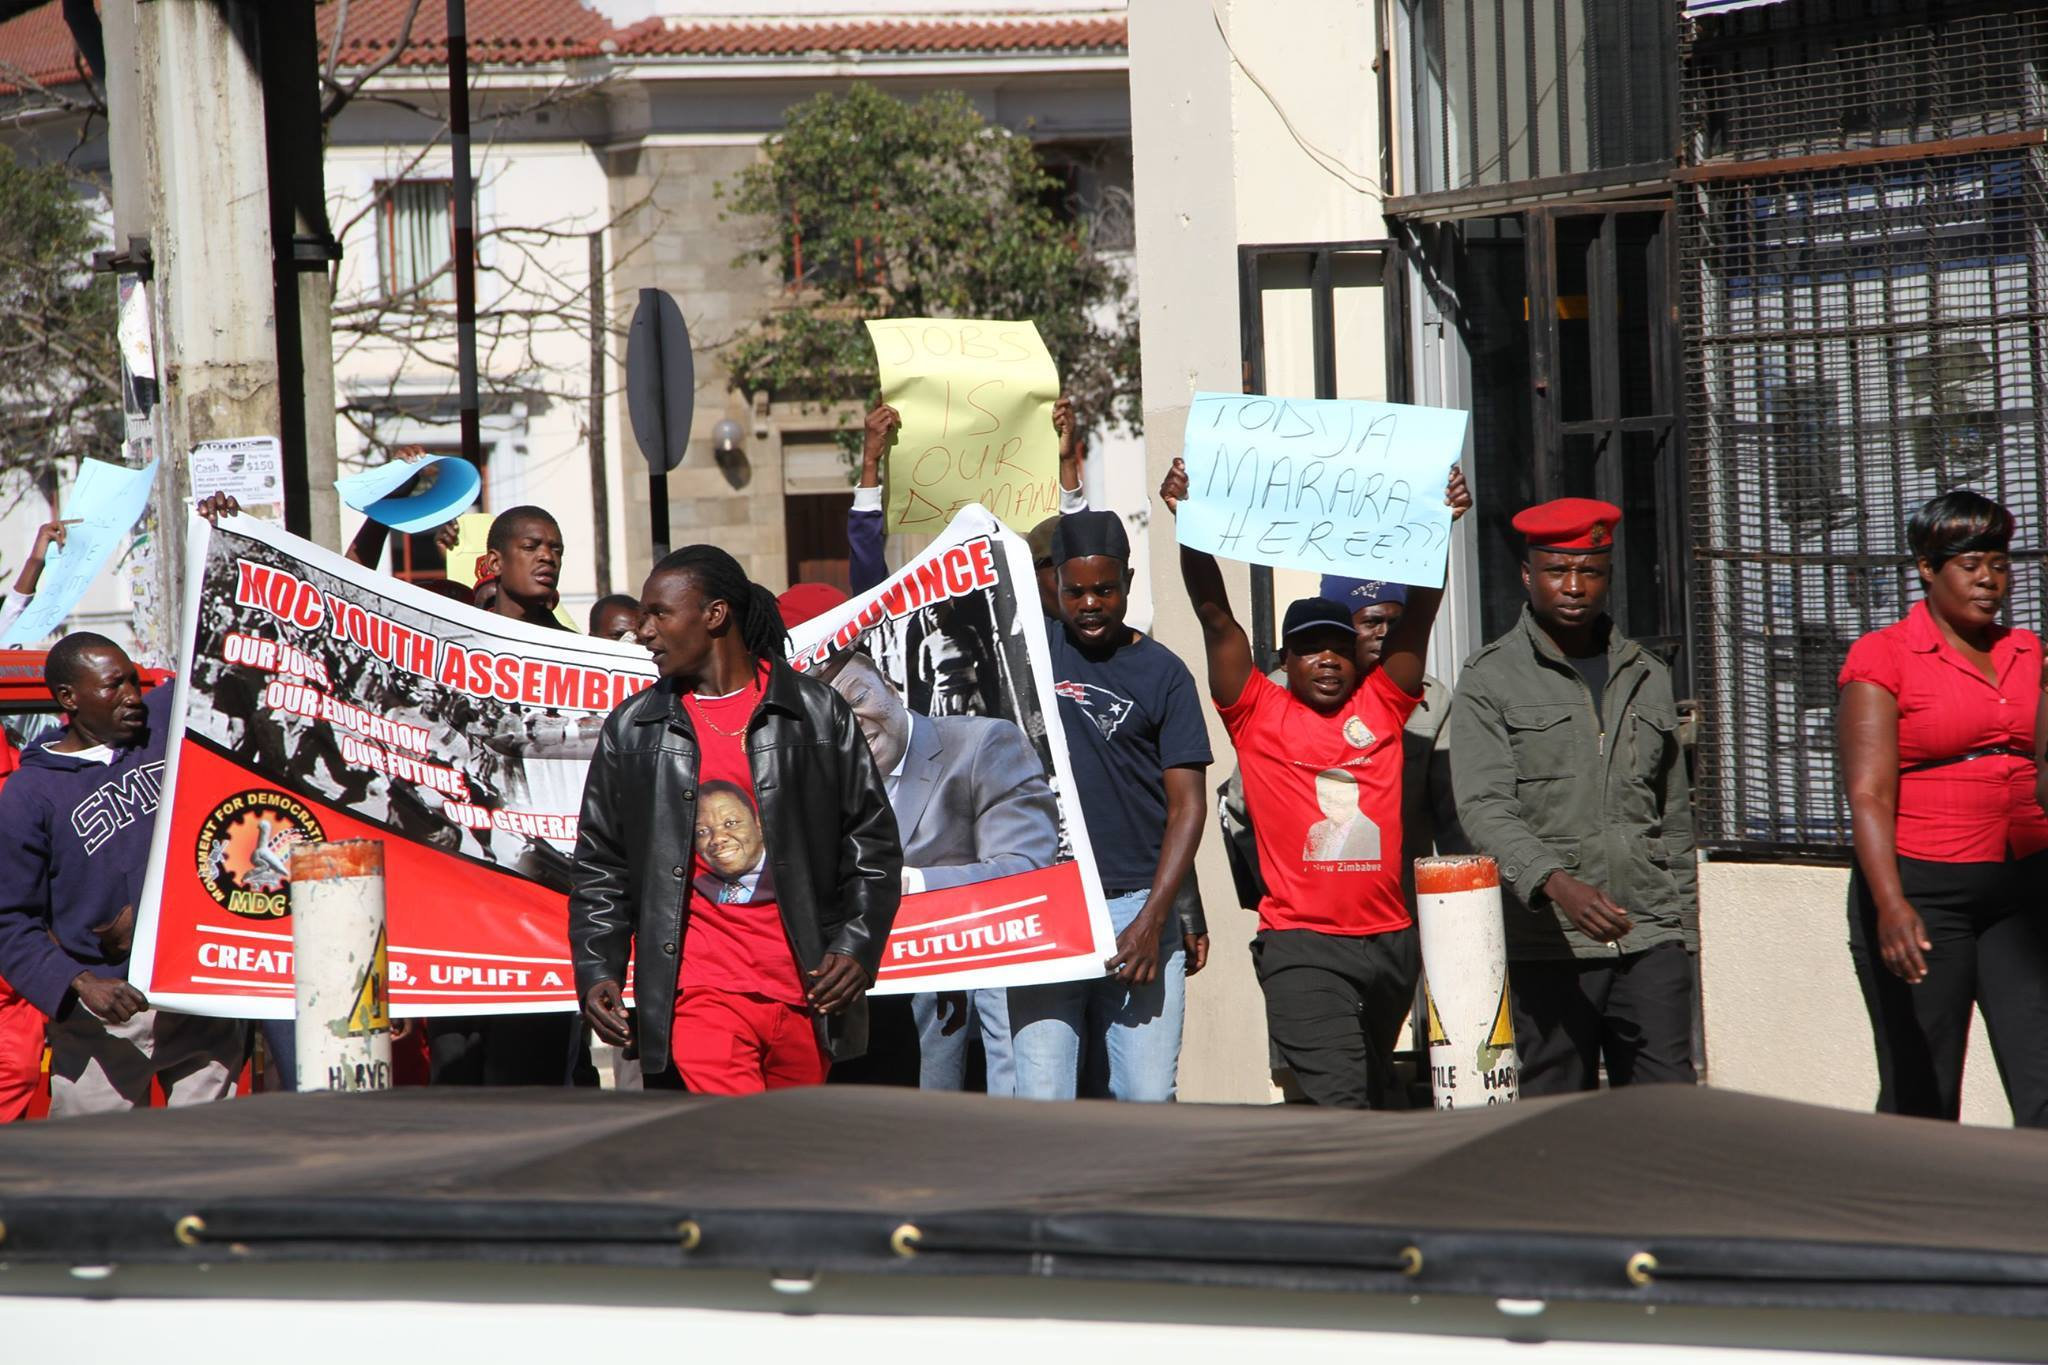 Mdc t youths arrested during june 16 march nehanda radio